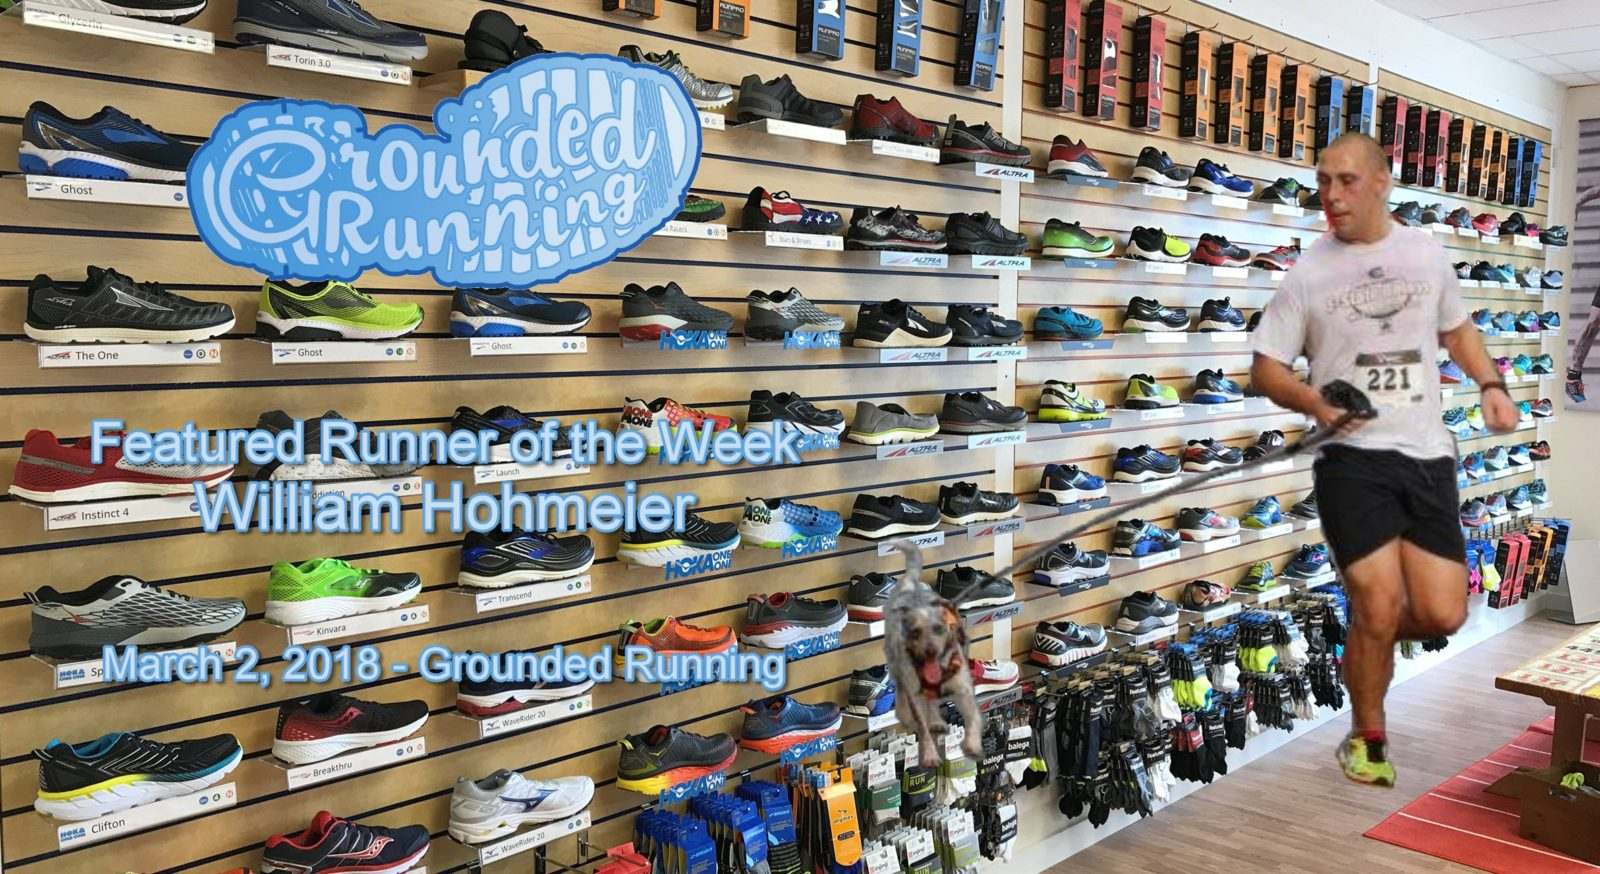 William Hohmeier - Featured Runner of the Week